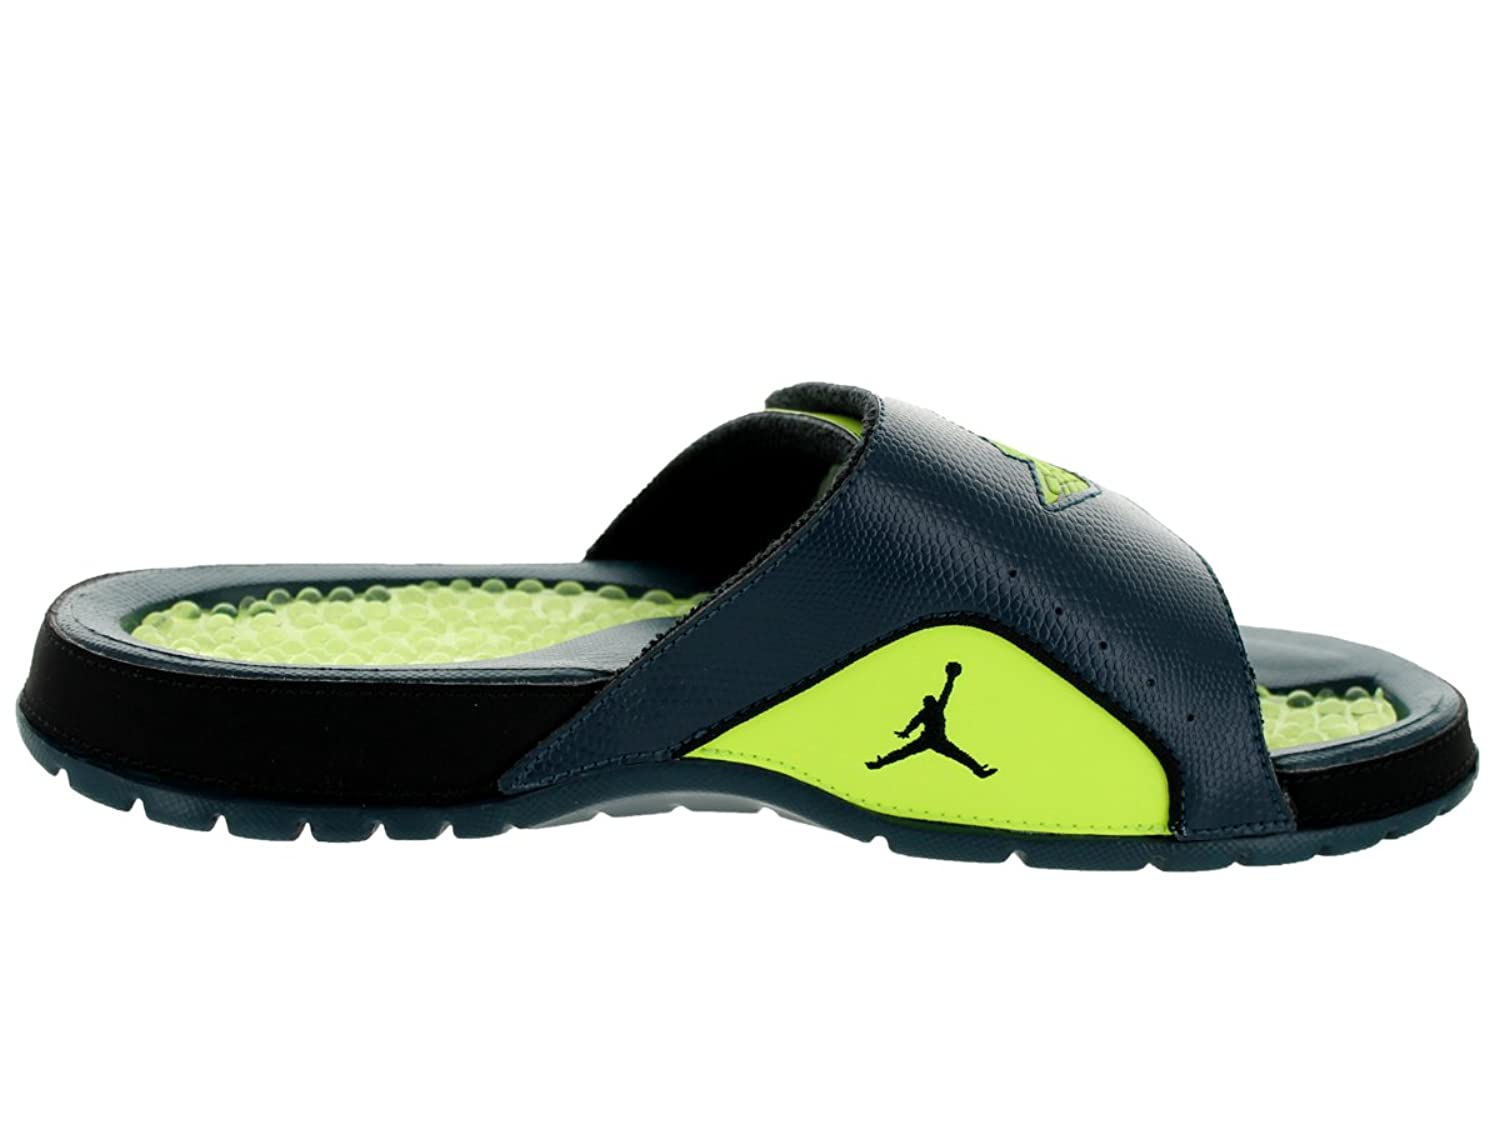 Amazon.com | Nike Jordan Men's Jordan Hydro II Retro Nightshade/Volt Ice/Black  Sandal 13 Men US | Sandals